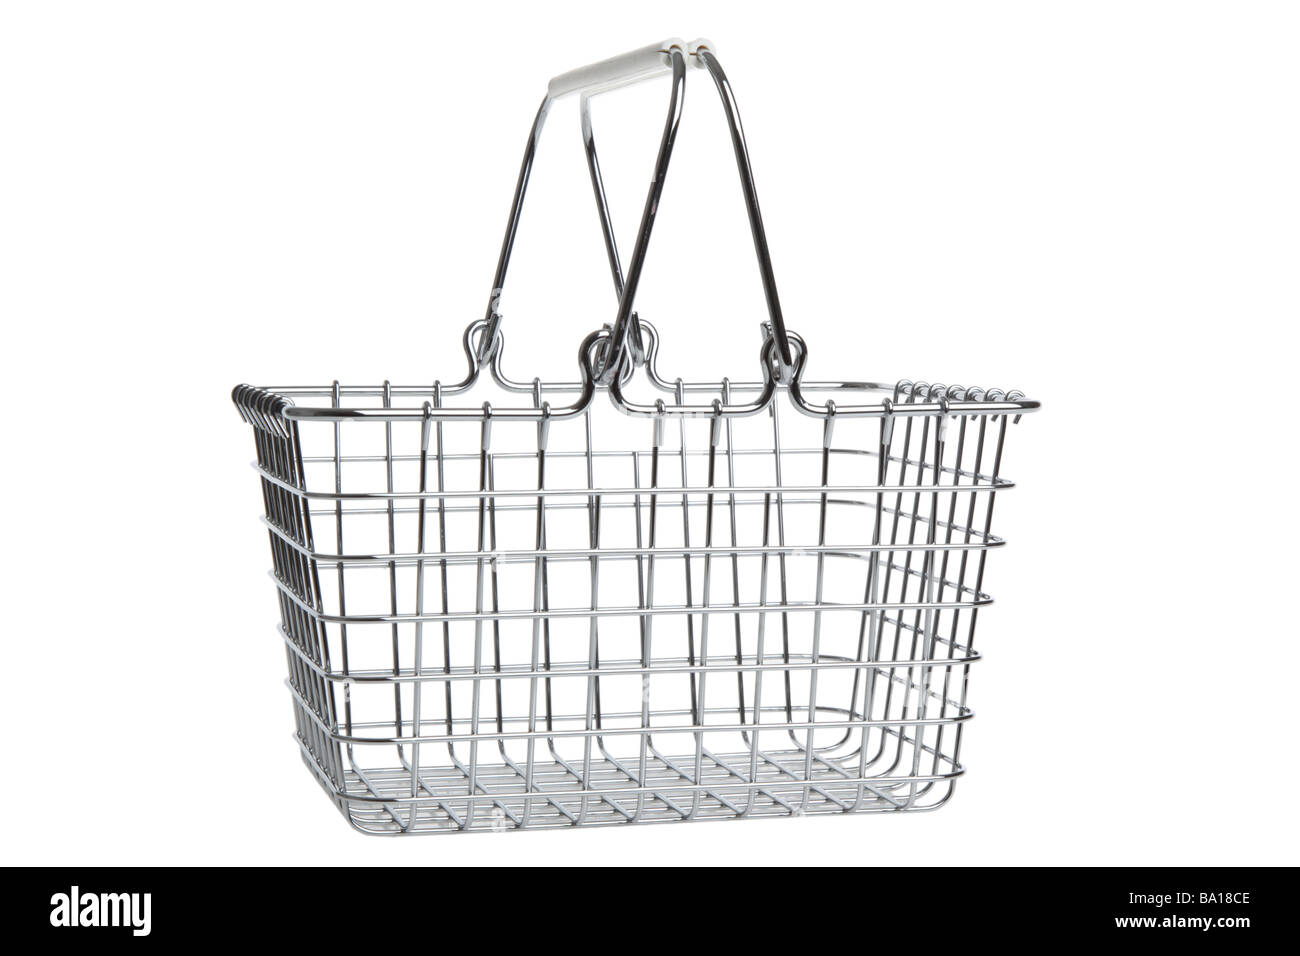 Basket Cut Out Stock Images & Pictures - Alamy